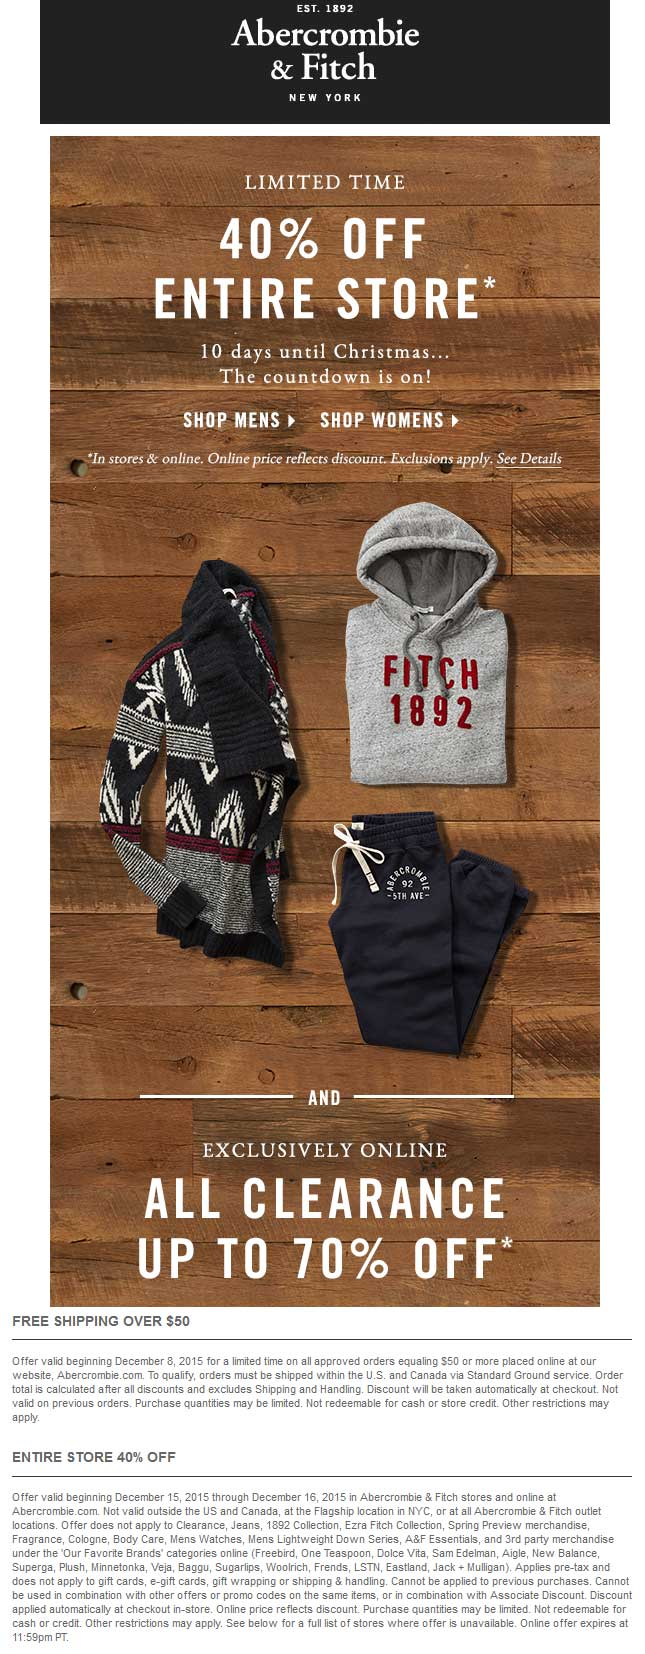 Abercrombie & Fitch Coupon July 2018 40% off everything at Abercrombie & Fitch, ditto online